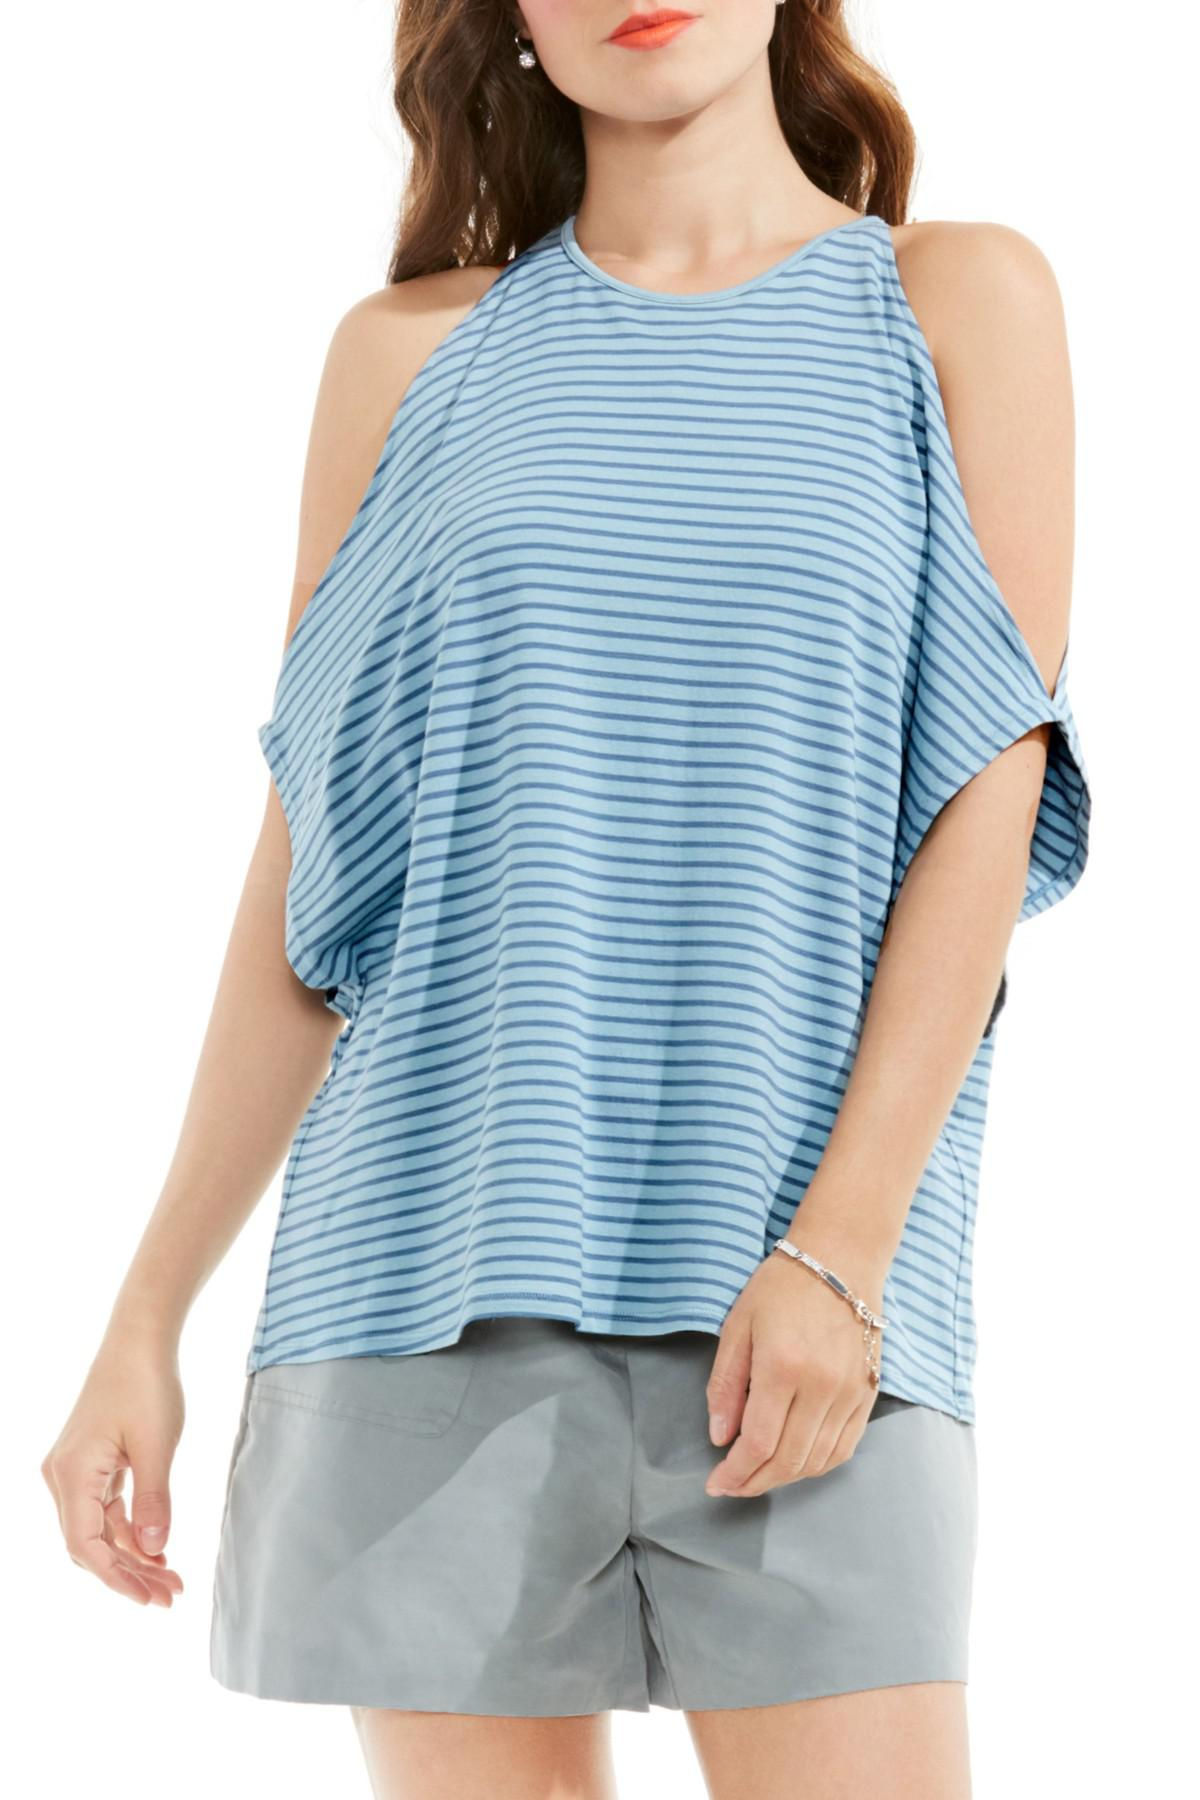 6dca96fca4ab00 Lyst - Vince Camuto Simple Stripe Cold Shoulder Top in Blue